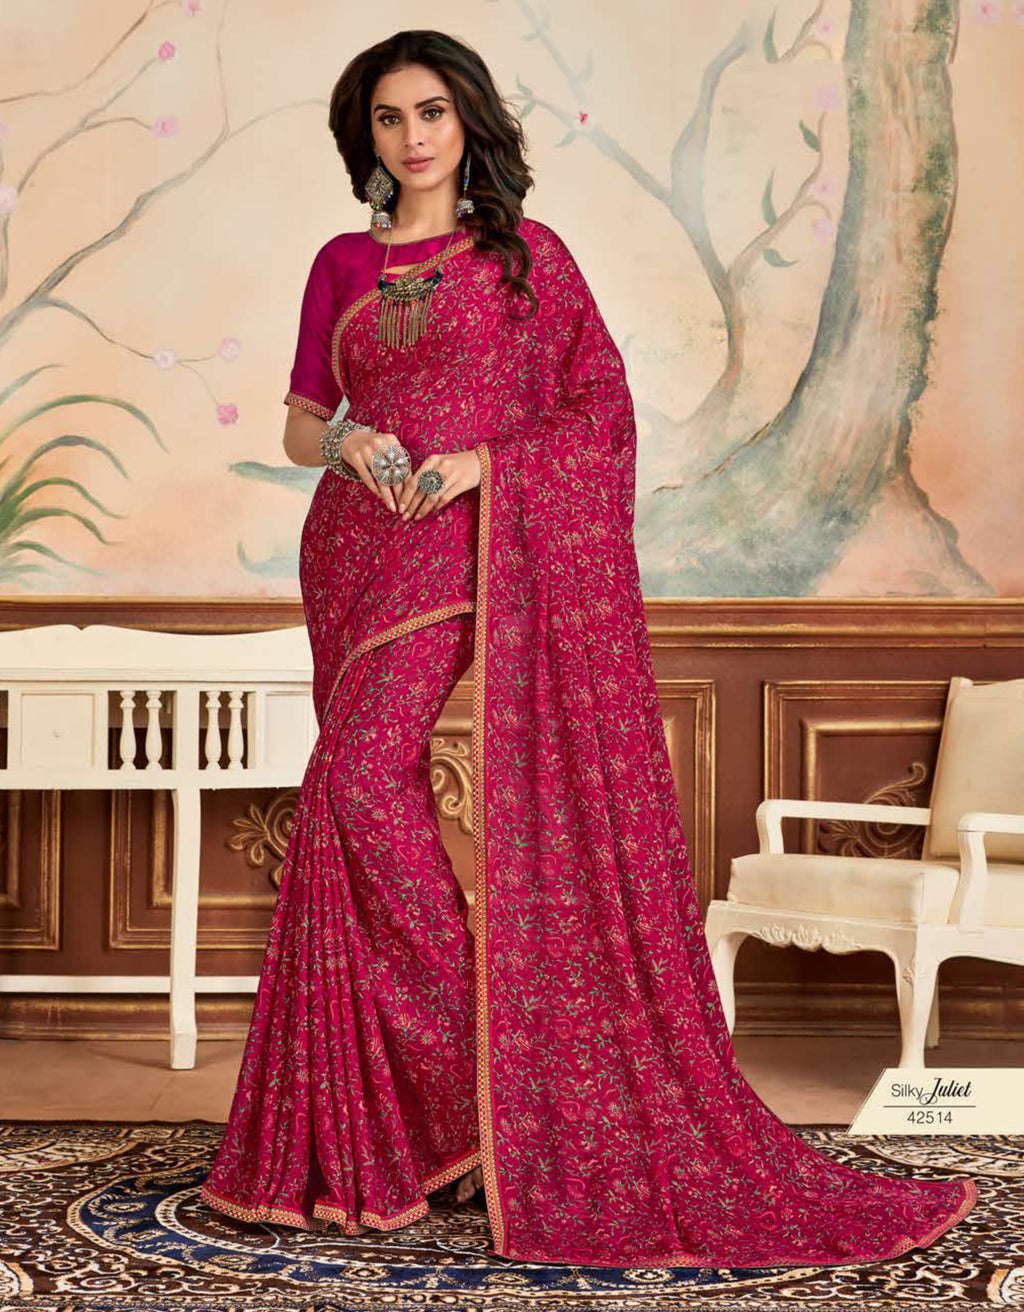 Rani Pink Color Crepe Chiffon Casual Party Sarees NYF-8587